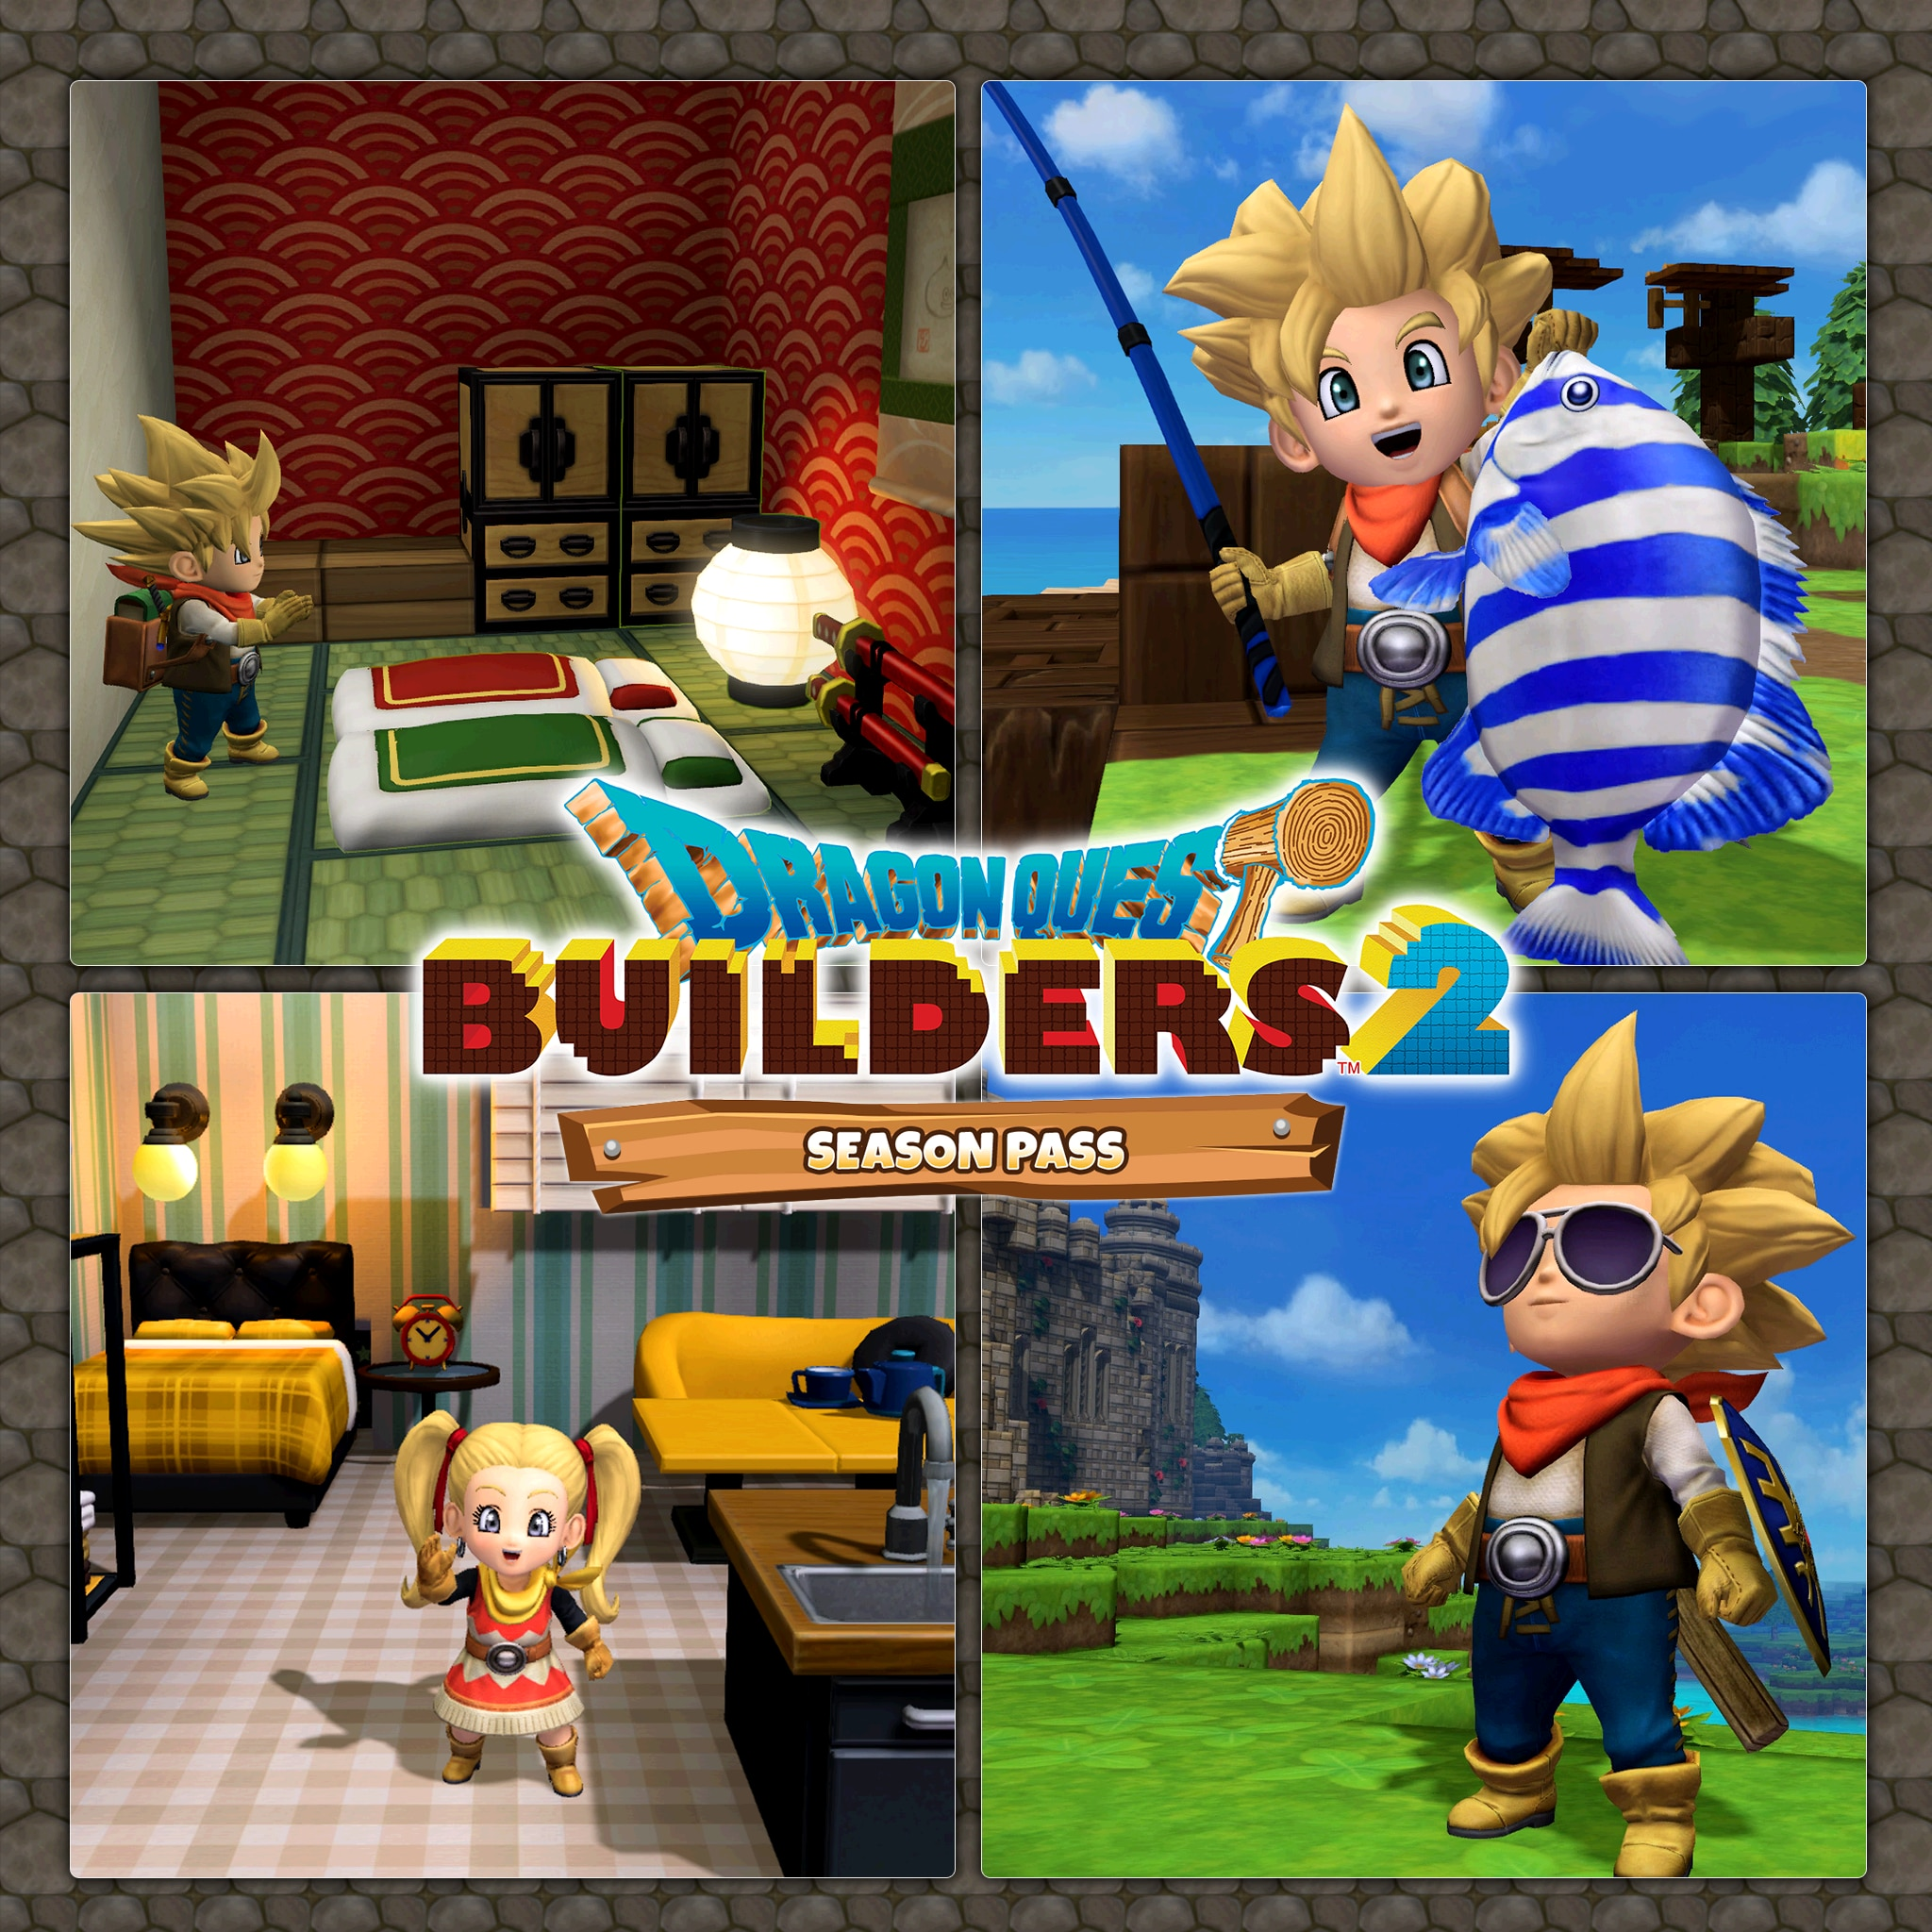 DRAGON QUEST BUILDERS 2 - Season Pass